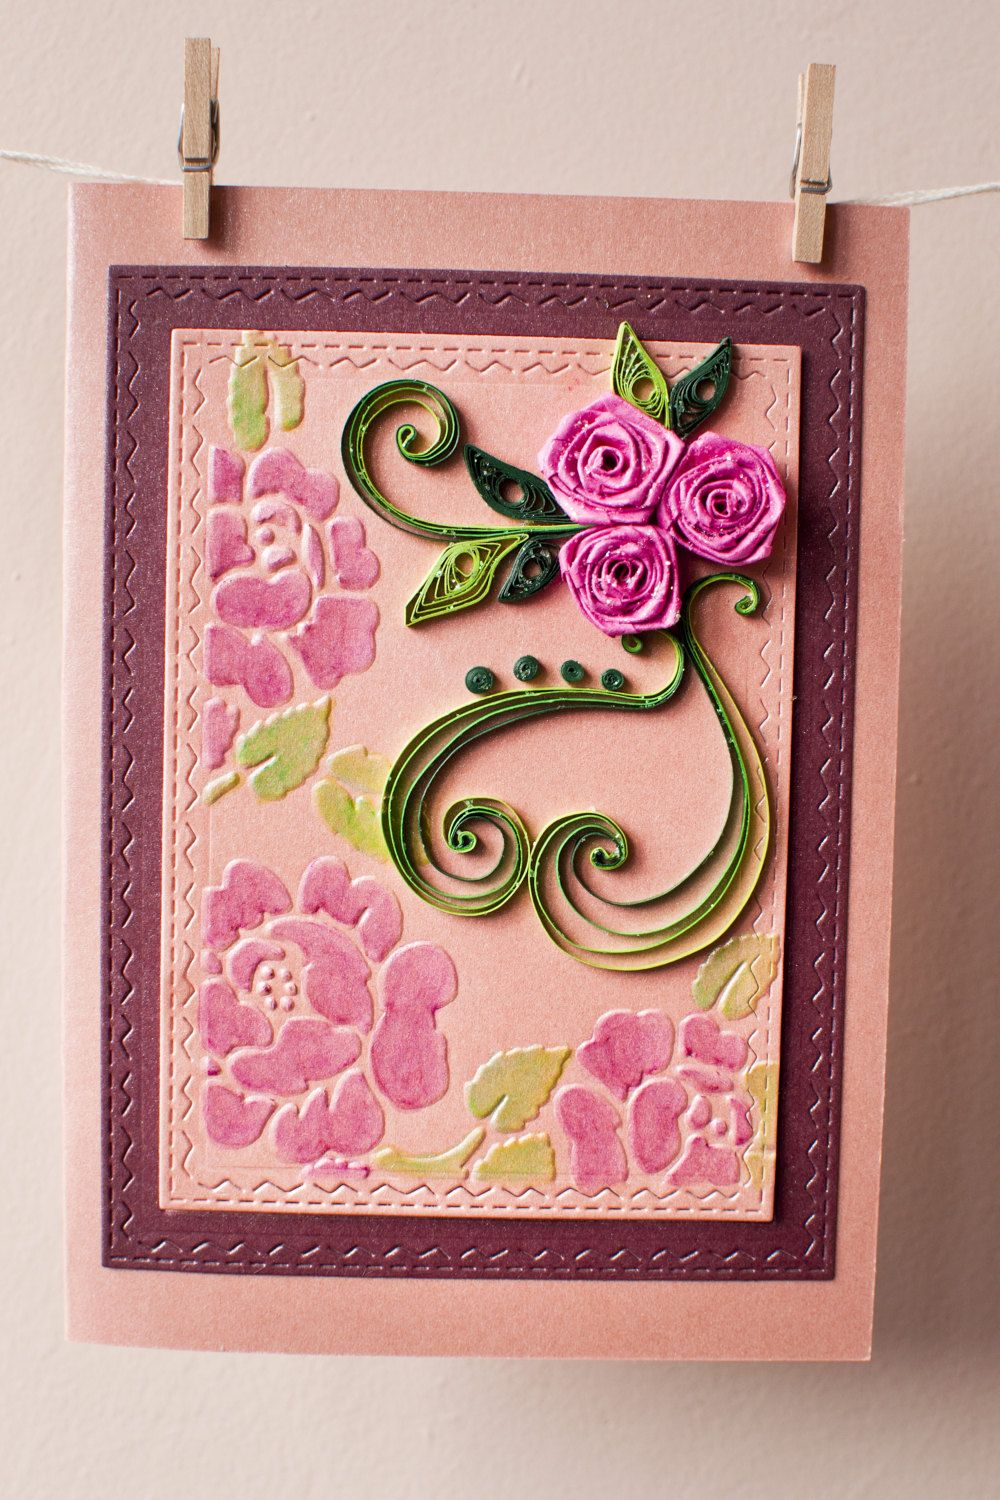 Mothers day card happy birthday card flowers card roses card mothers day card happy birthday card flowers card roses card greeting card handmade card crafted card quilled card izmirmasajfo